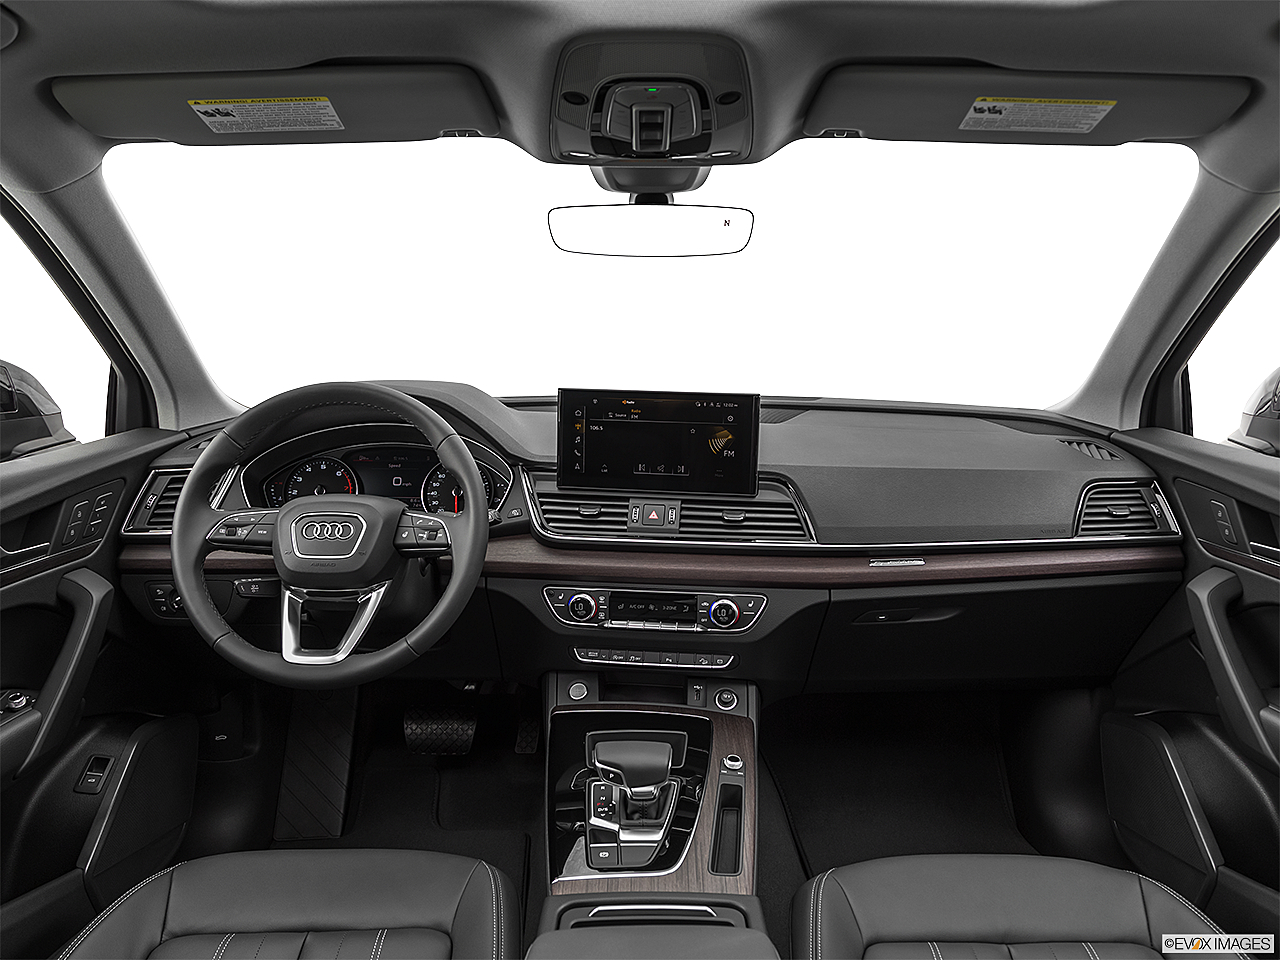 2021 Audi Q5 Premium 45 TFSI, centered wide dash shot